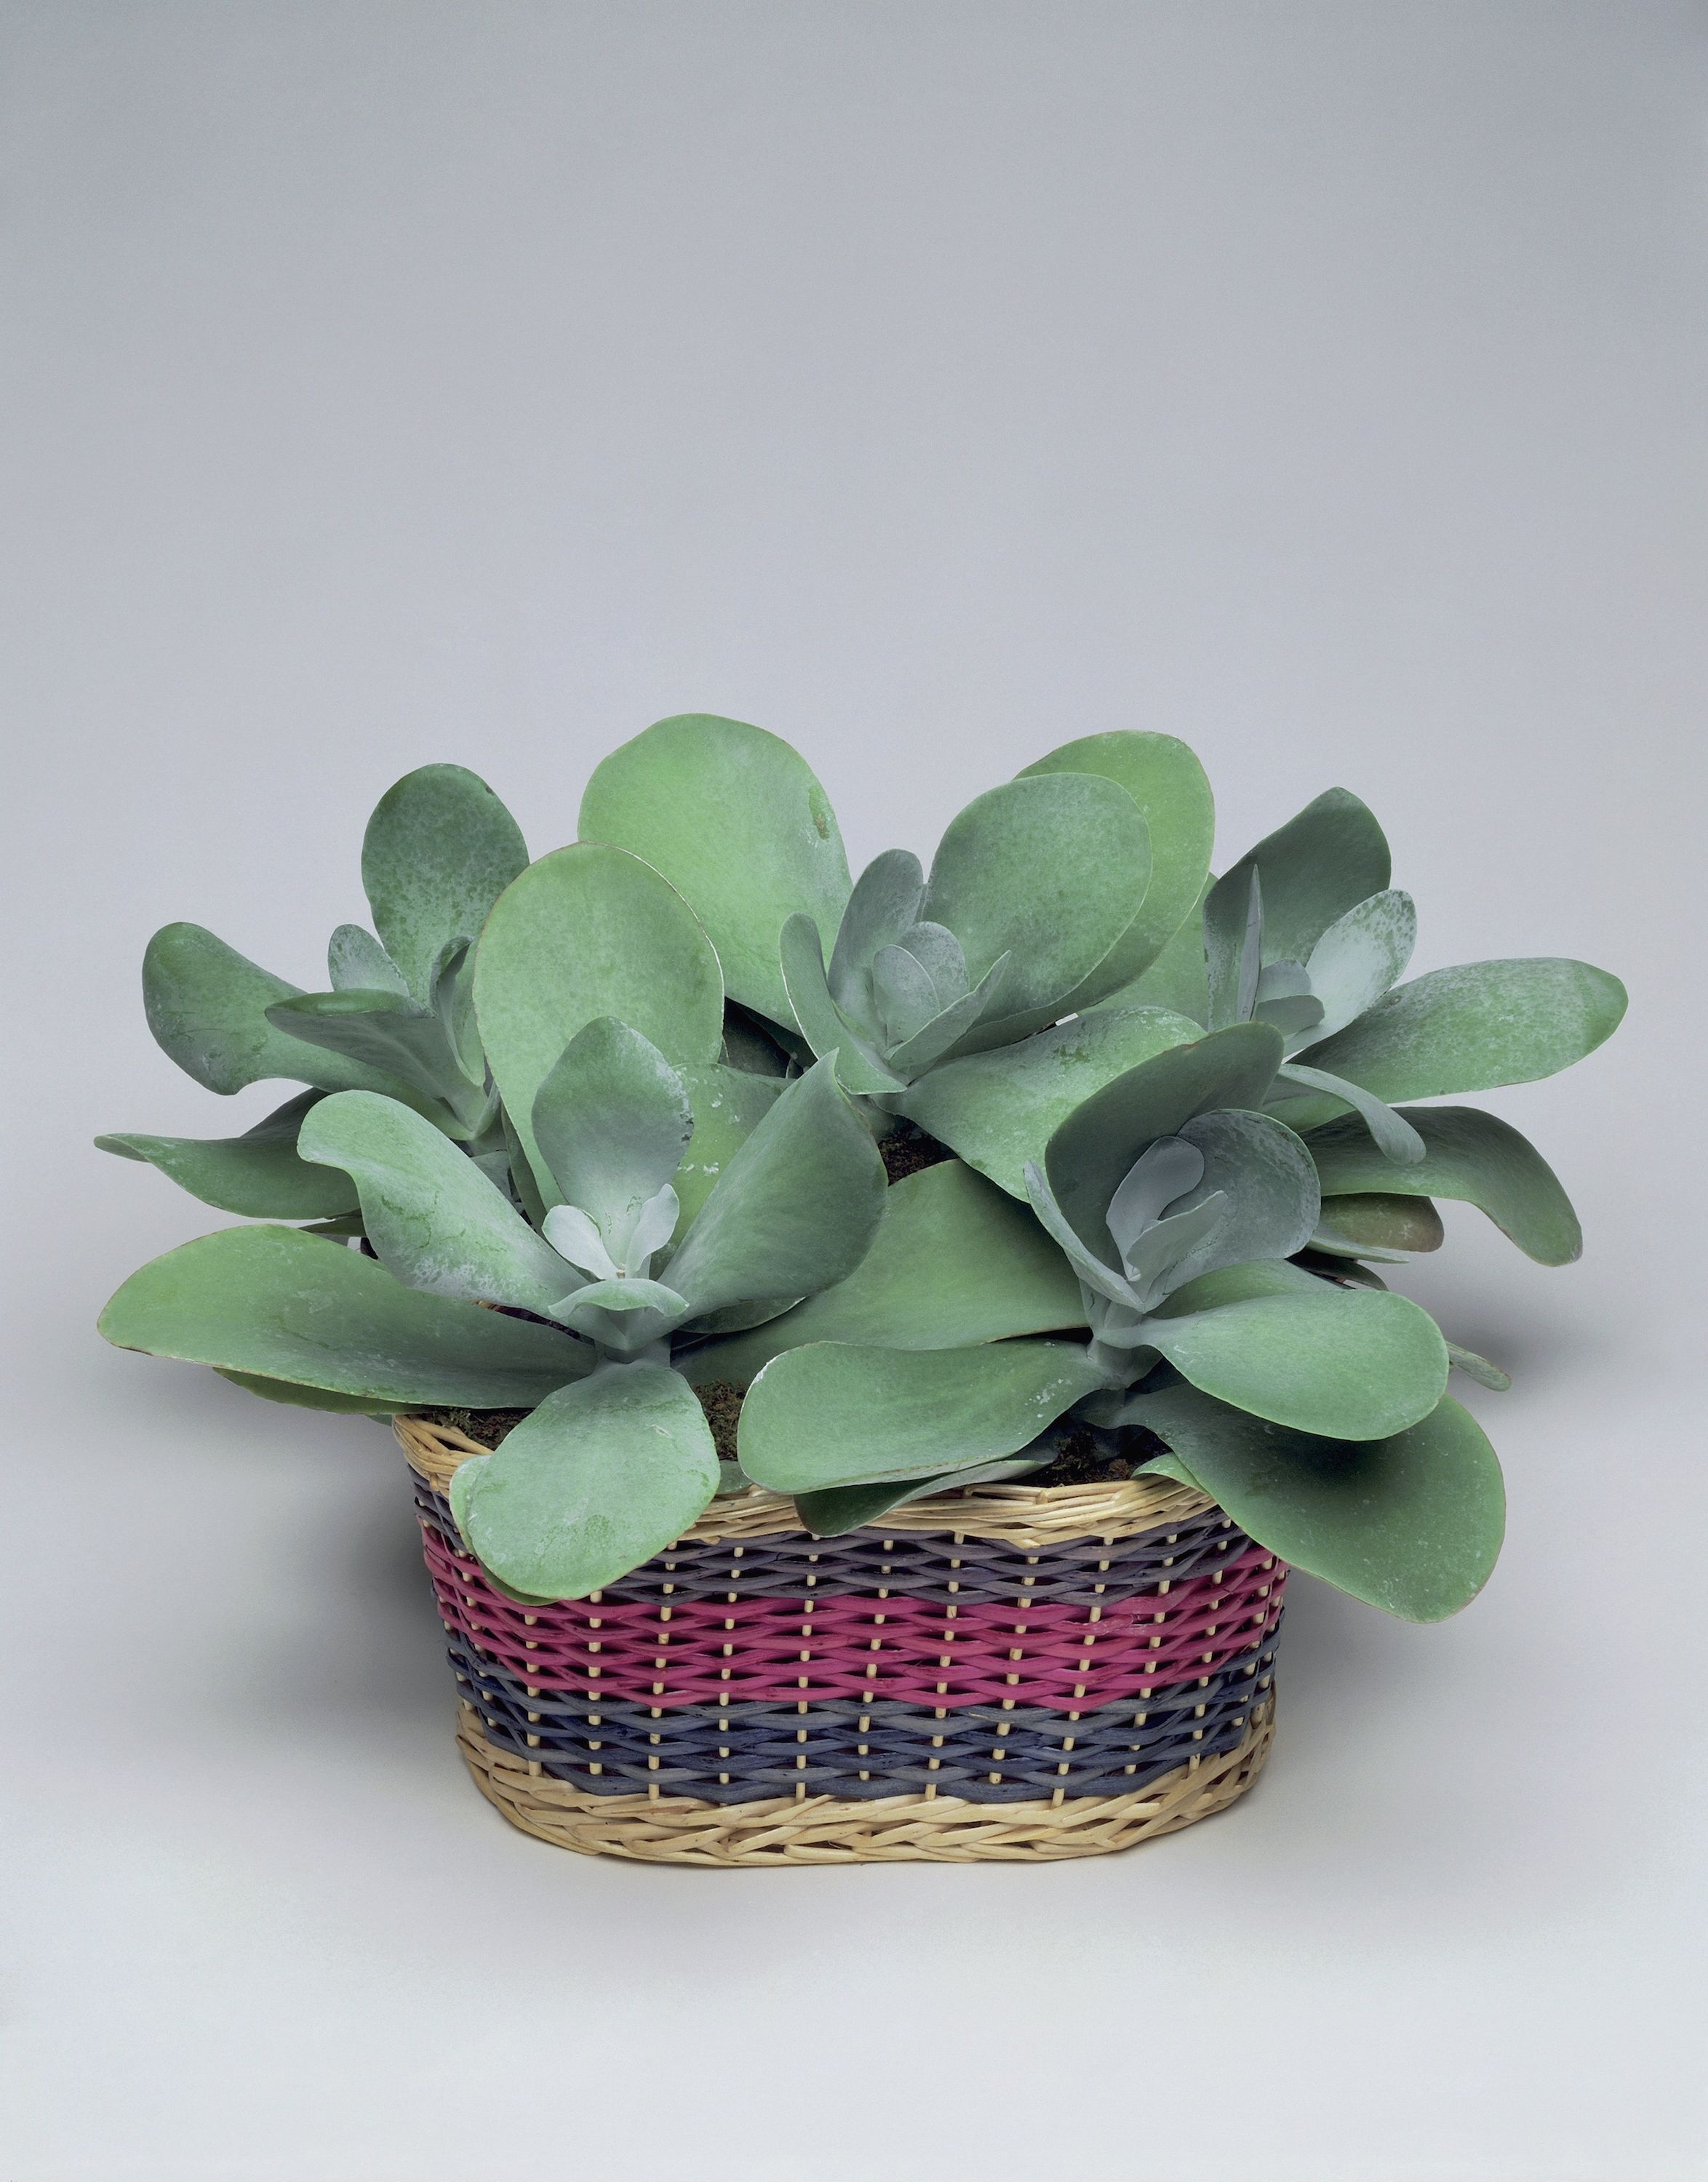 25 Best Indoor Plants For Apartments - Low-Maintenance ... Ze Plant At Home Depot on plants with white flowers, plants at ikea, plants at kroger, plants at tj maxx, plants under evergreen trees, plants at kmart, plants at harris teeter, plants at publix, plants at sam's club, plants that repel bugs and pests, plants at homegoods, plants that repel mosquitoes, plants inside home, plants at safeway, plants at disney, plants at michaels, plants at office depot, vines depot, plants at cvs, plants at menards,